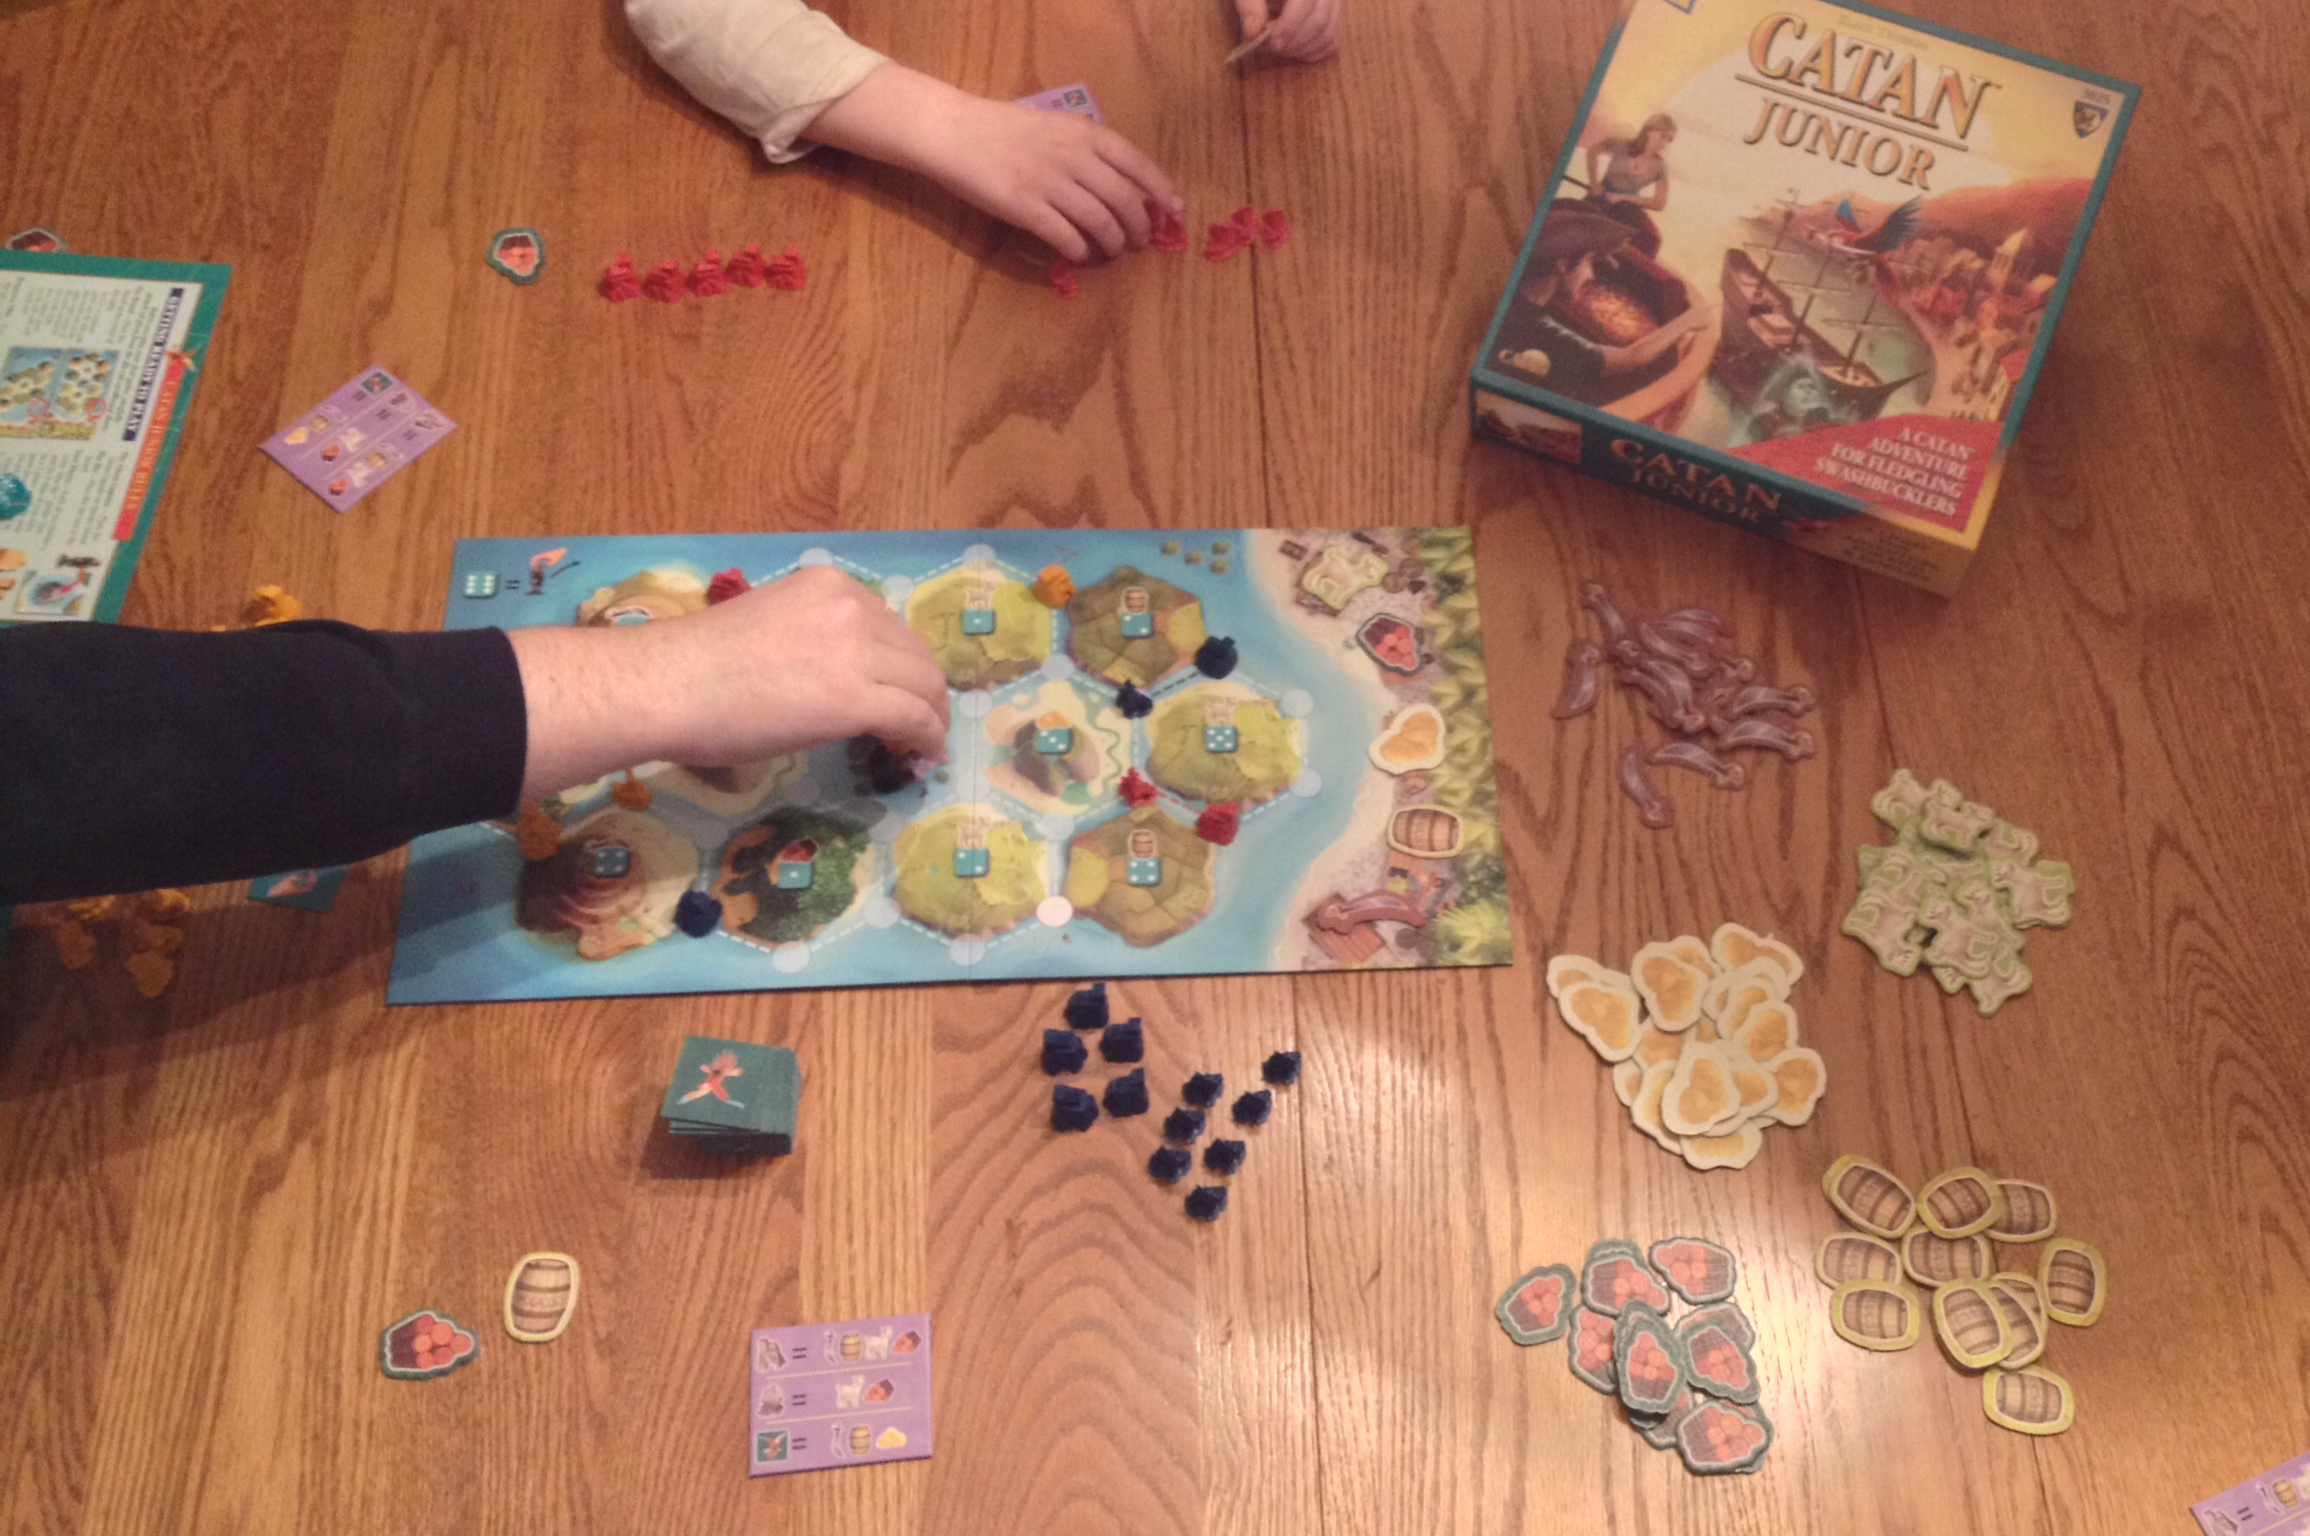 Board Game Review: Catan: Junior